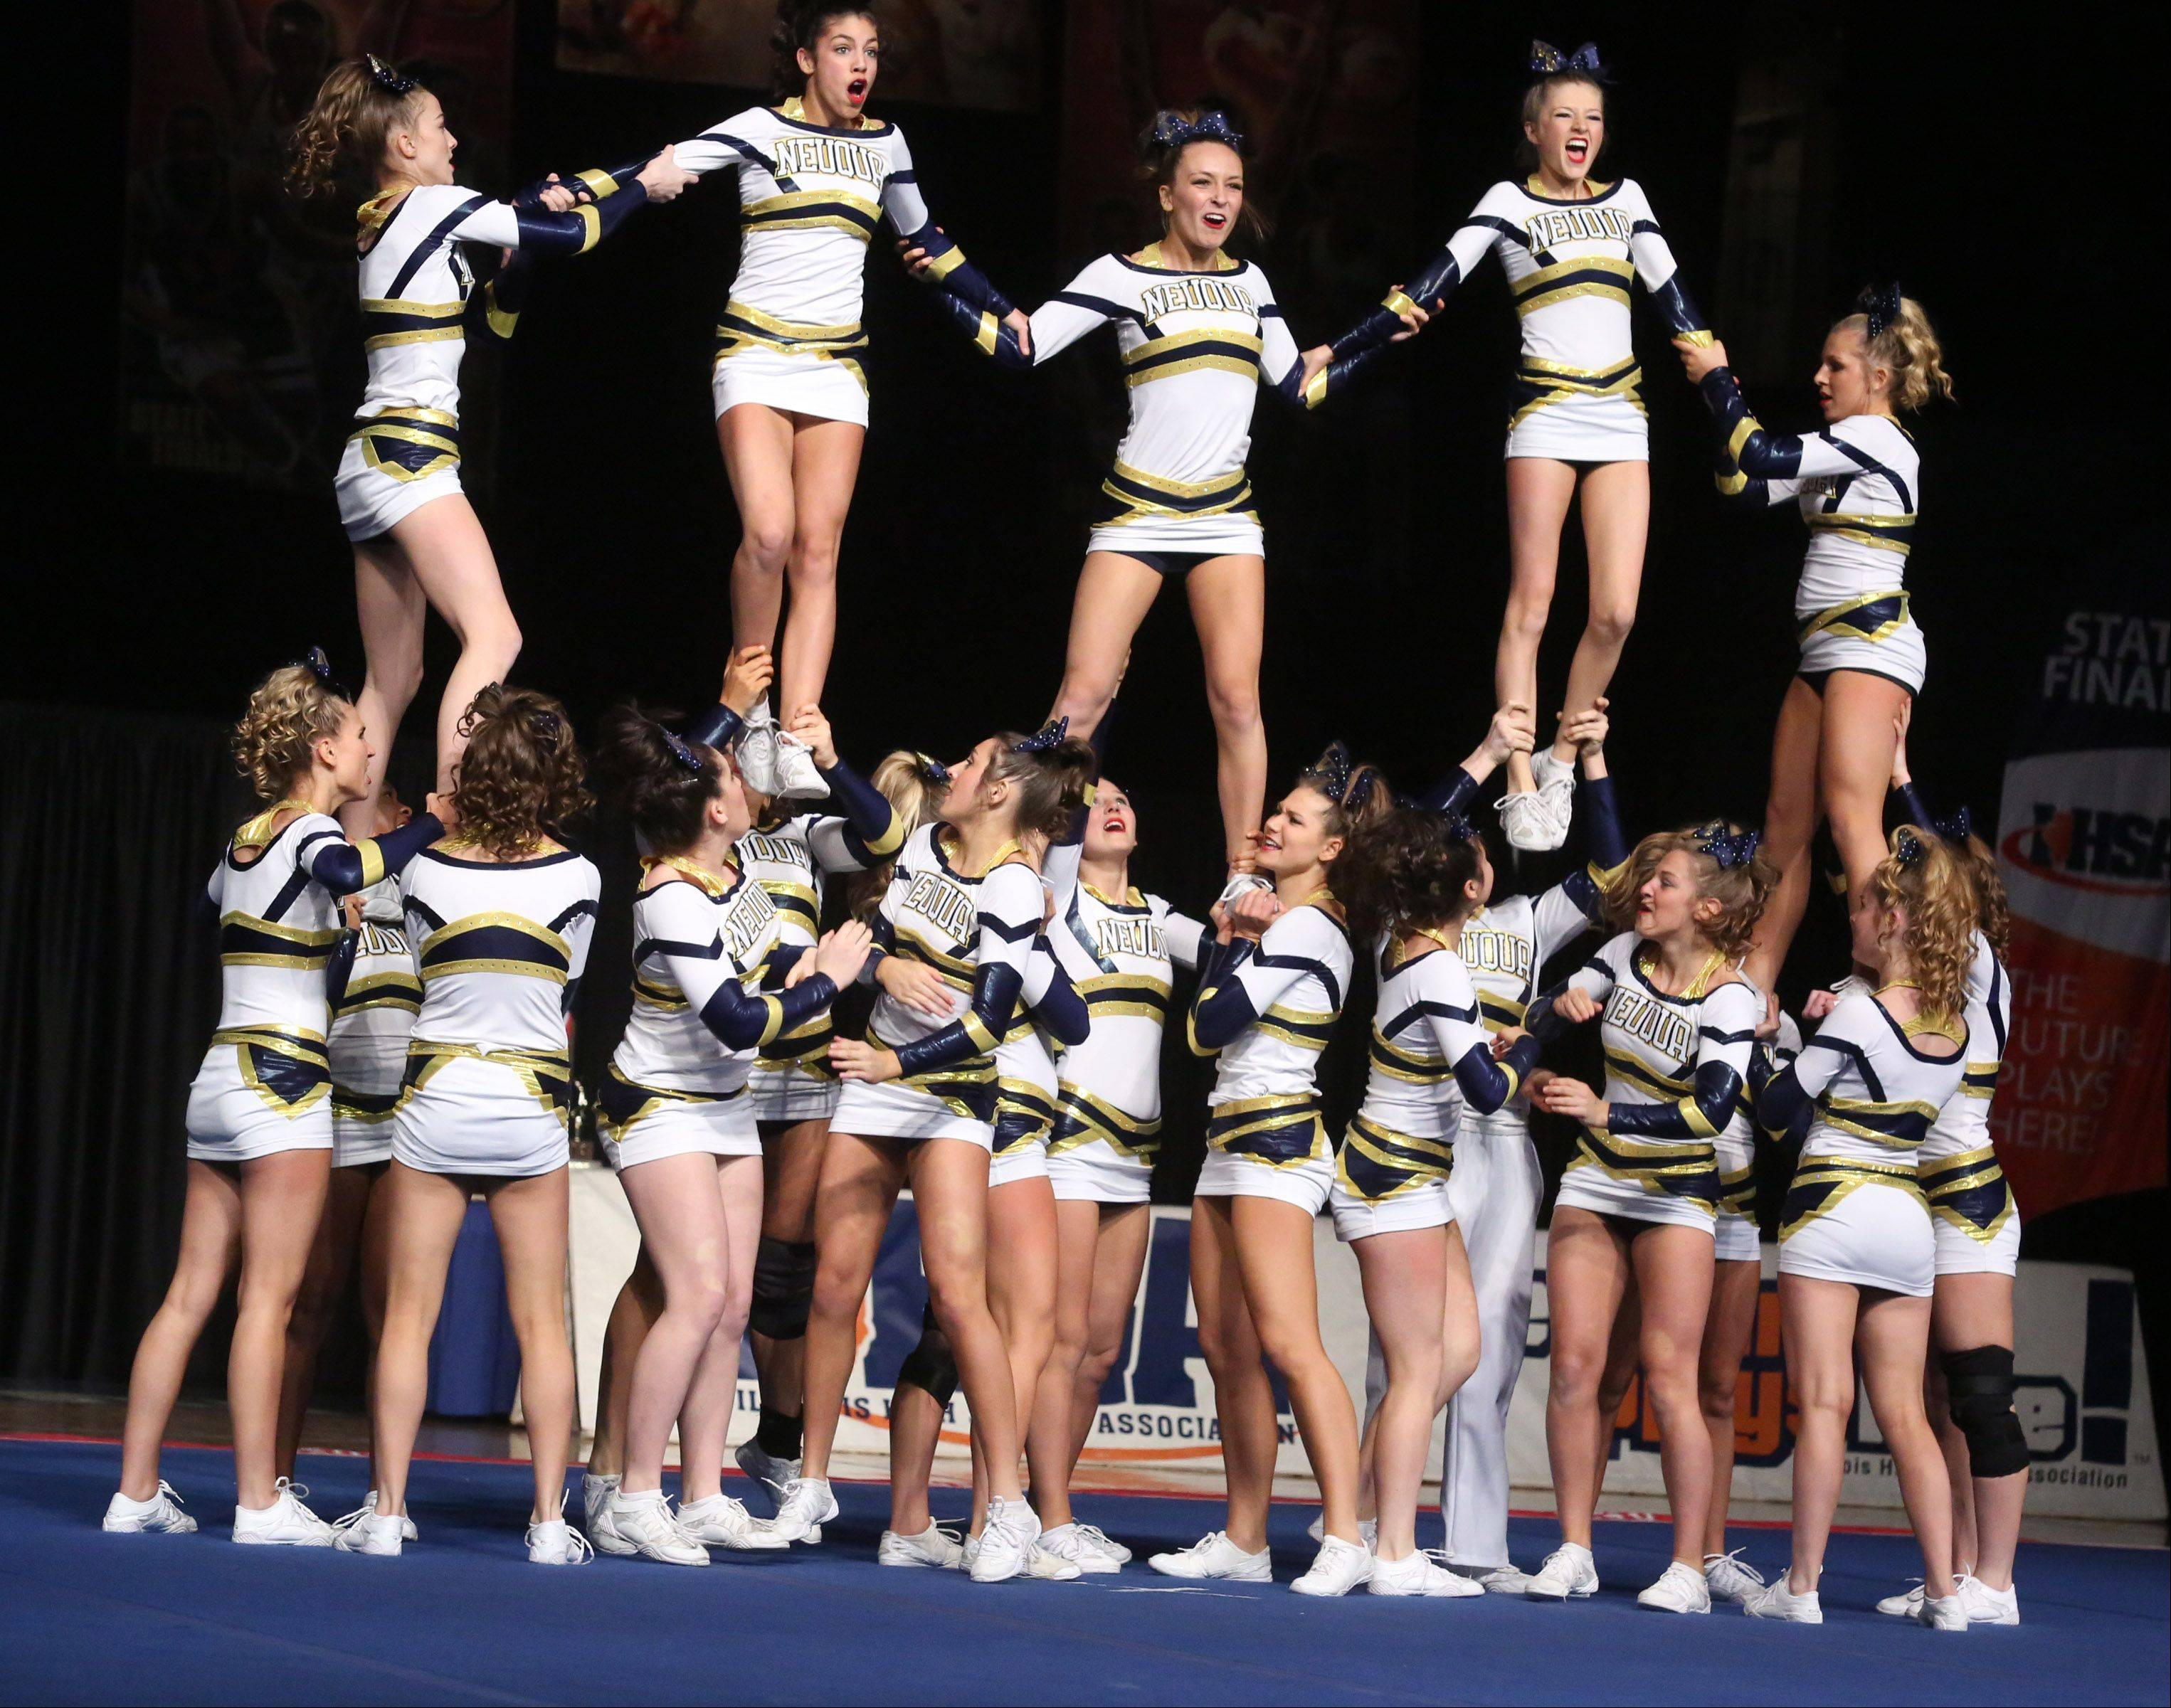 Neuqua Valley High School's cheer team performs in the large team category.